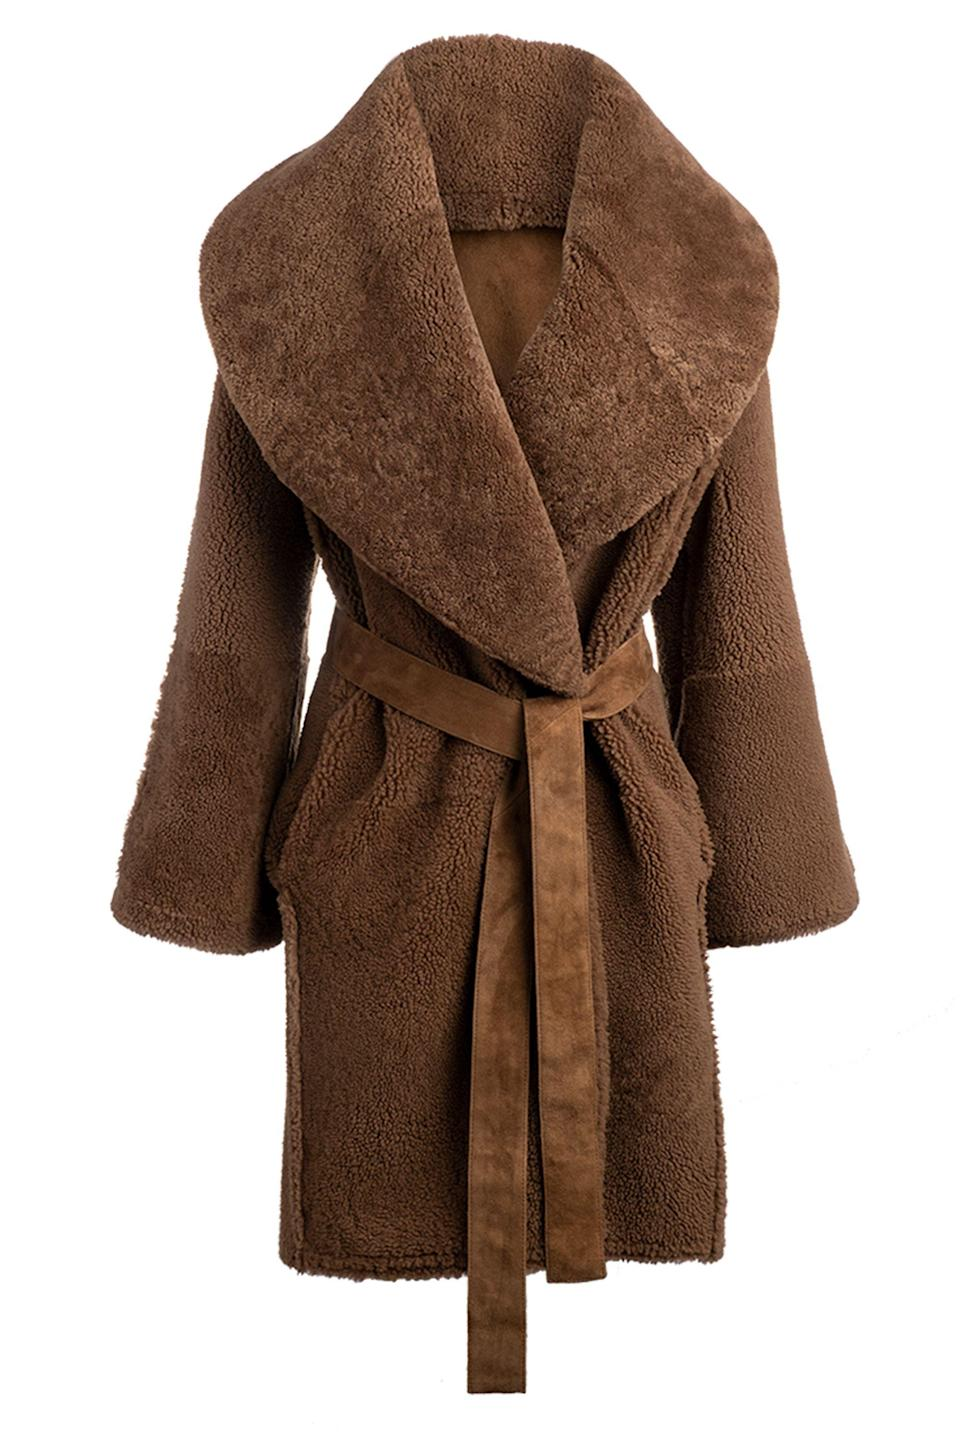 """<p><strong>Arje </strong></p><p>arje.com</p><p><strong>$3595.00</strong></p><p><a href=""""https://arje.com/collections/womens-coats-and-jackets-may-2020/products/the-anais-reversible-shearling-coat-2"""" rel=""""nofollow noopener"""" target=""""_blank"""" data-ylk=""""slk:Shop Now"""" class=""""link rapid-noclick-resp"""">Shop Now</a></p><p>Described as dramatic, this is a teddy coat with an oversized collar to be the coat you'll never want to take off.<br></p>"""